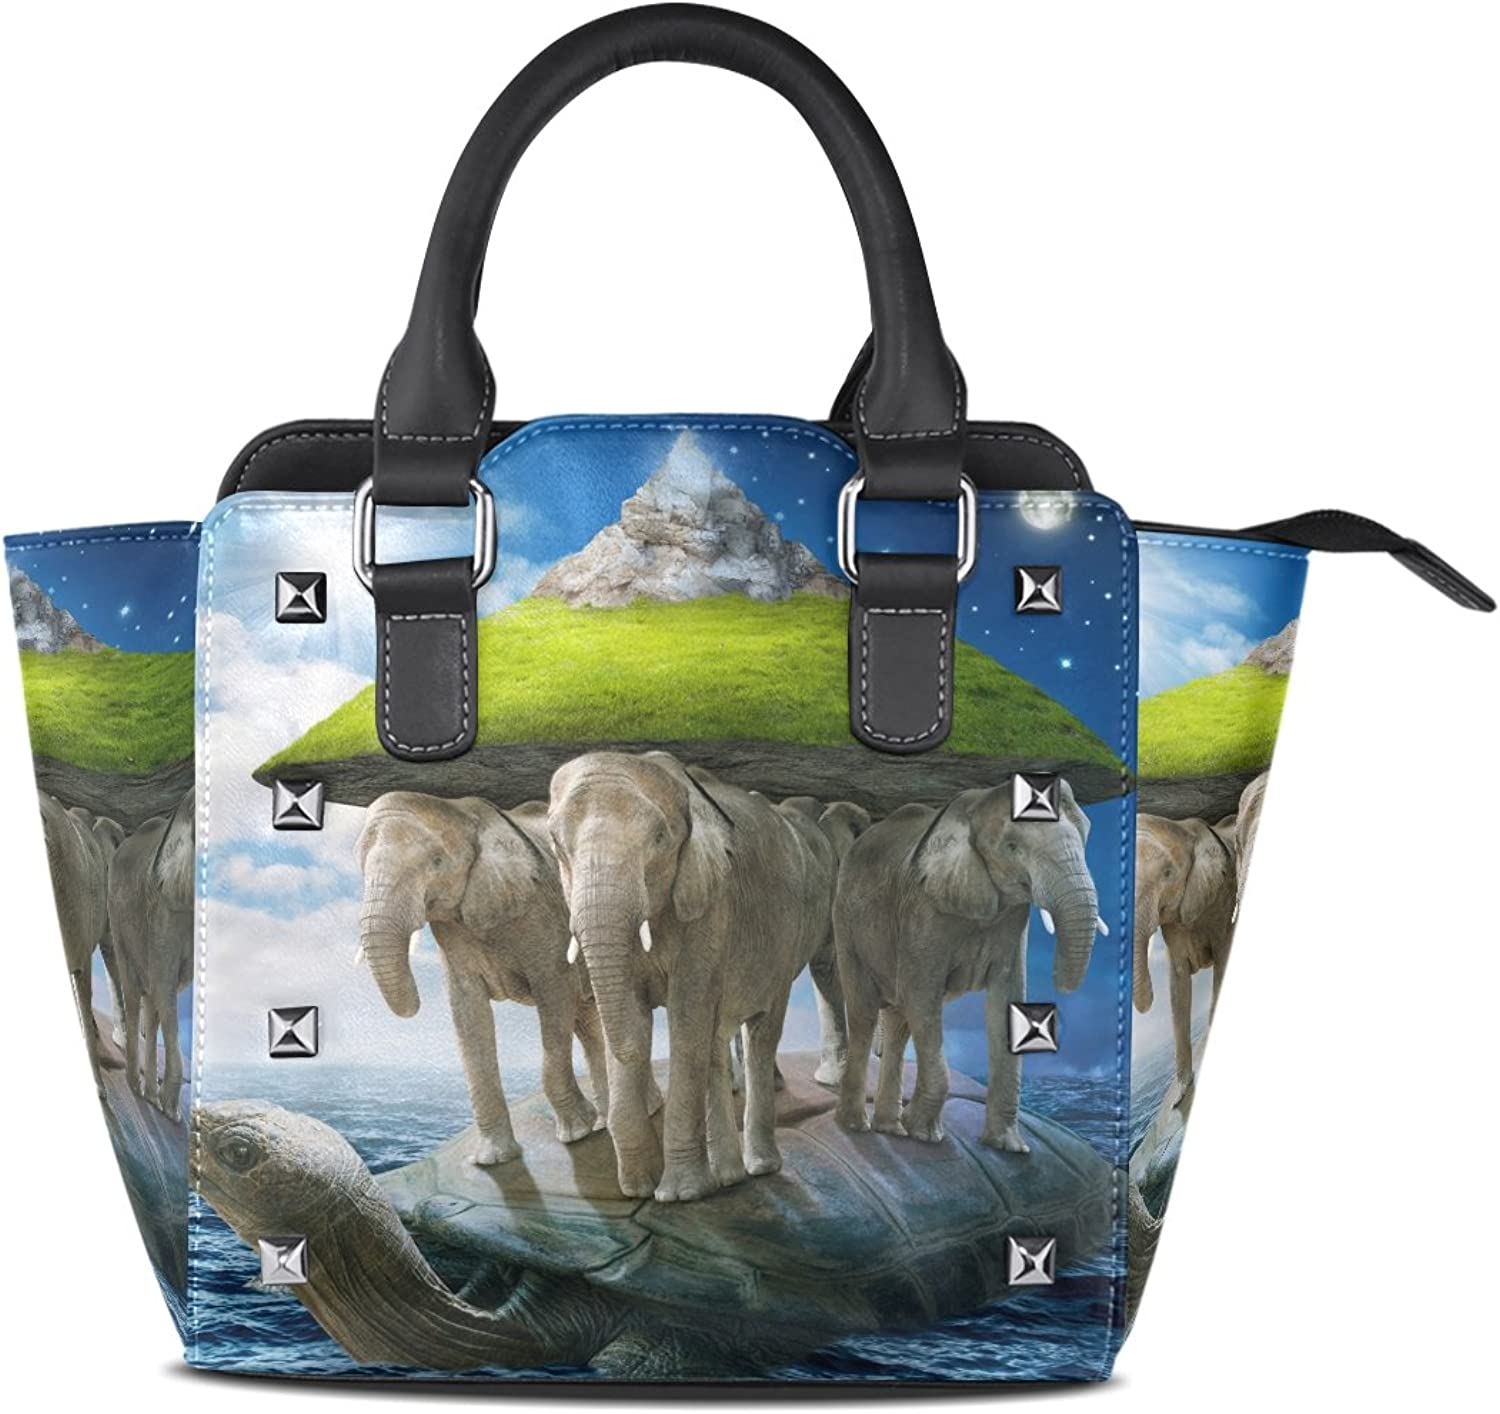 Sunlome World Turtle Carrying The Elephants Print Handbags Women's PU Leather Top-Handle Shoulder Bags